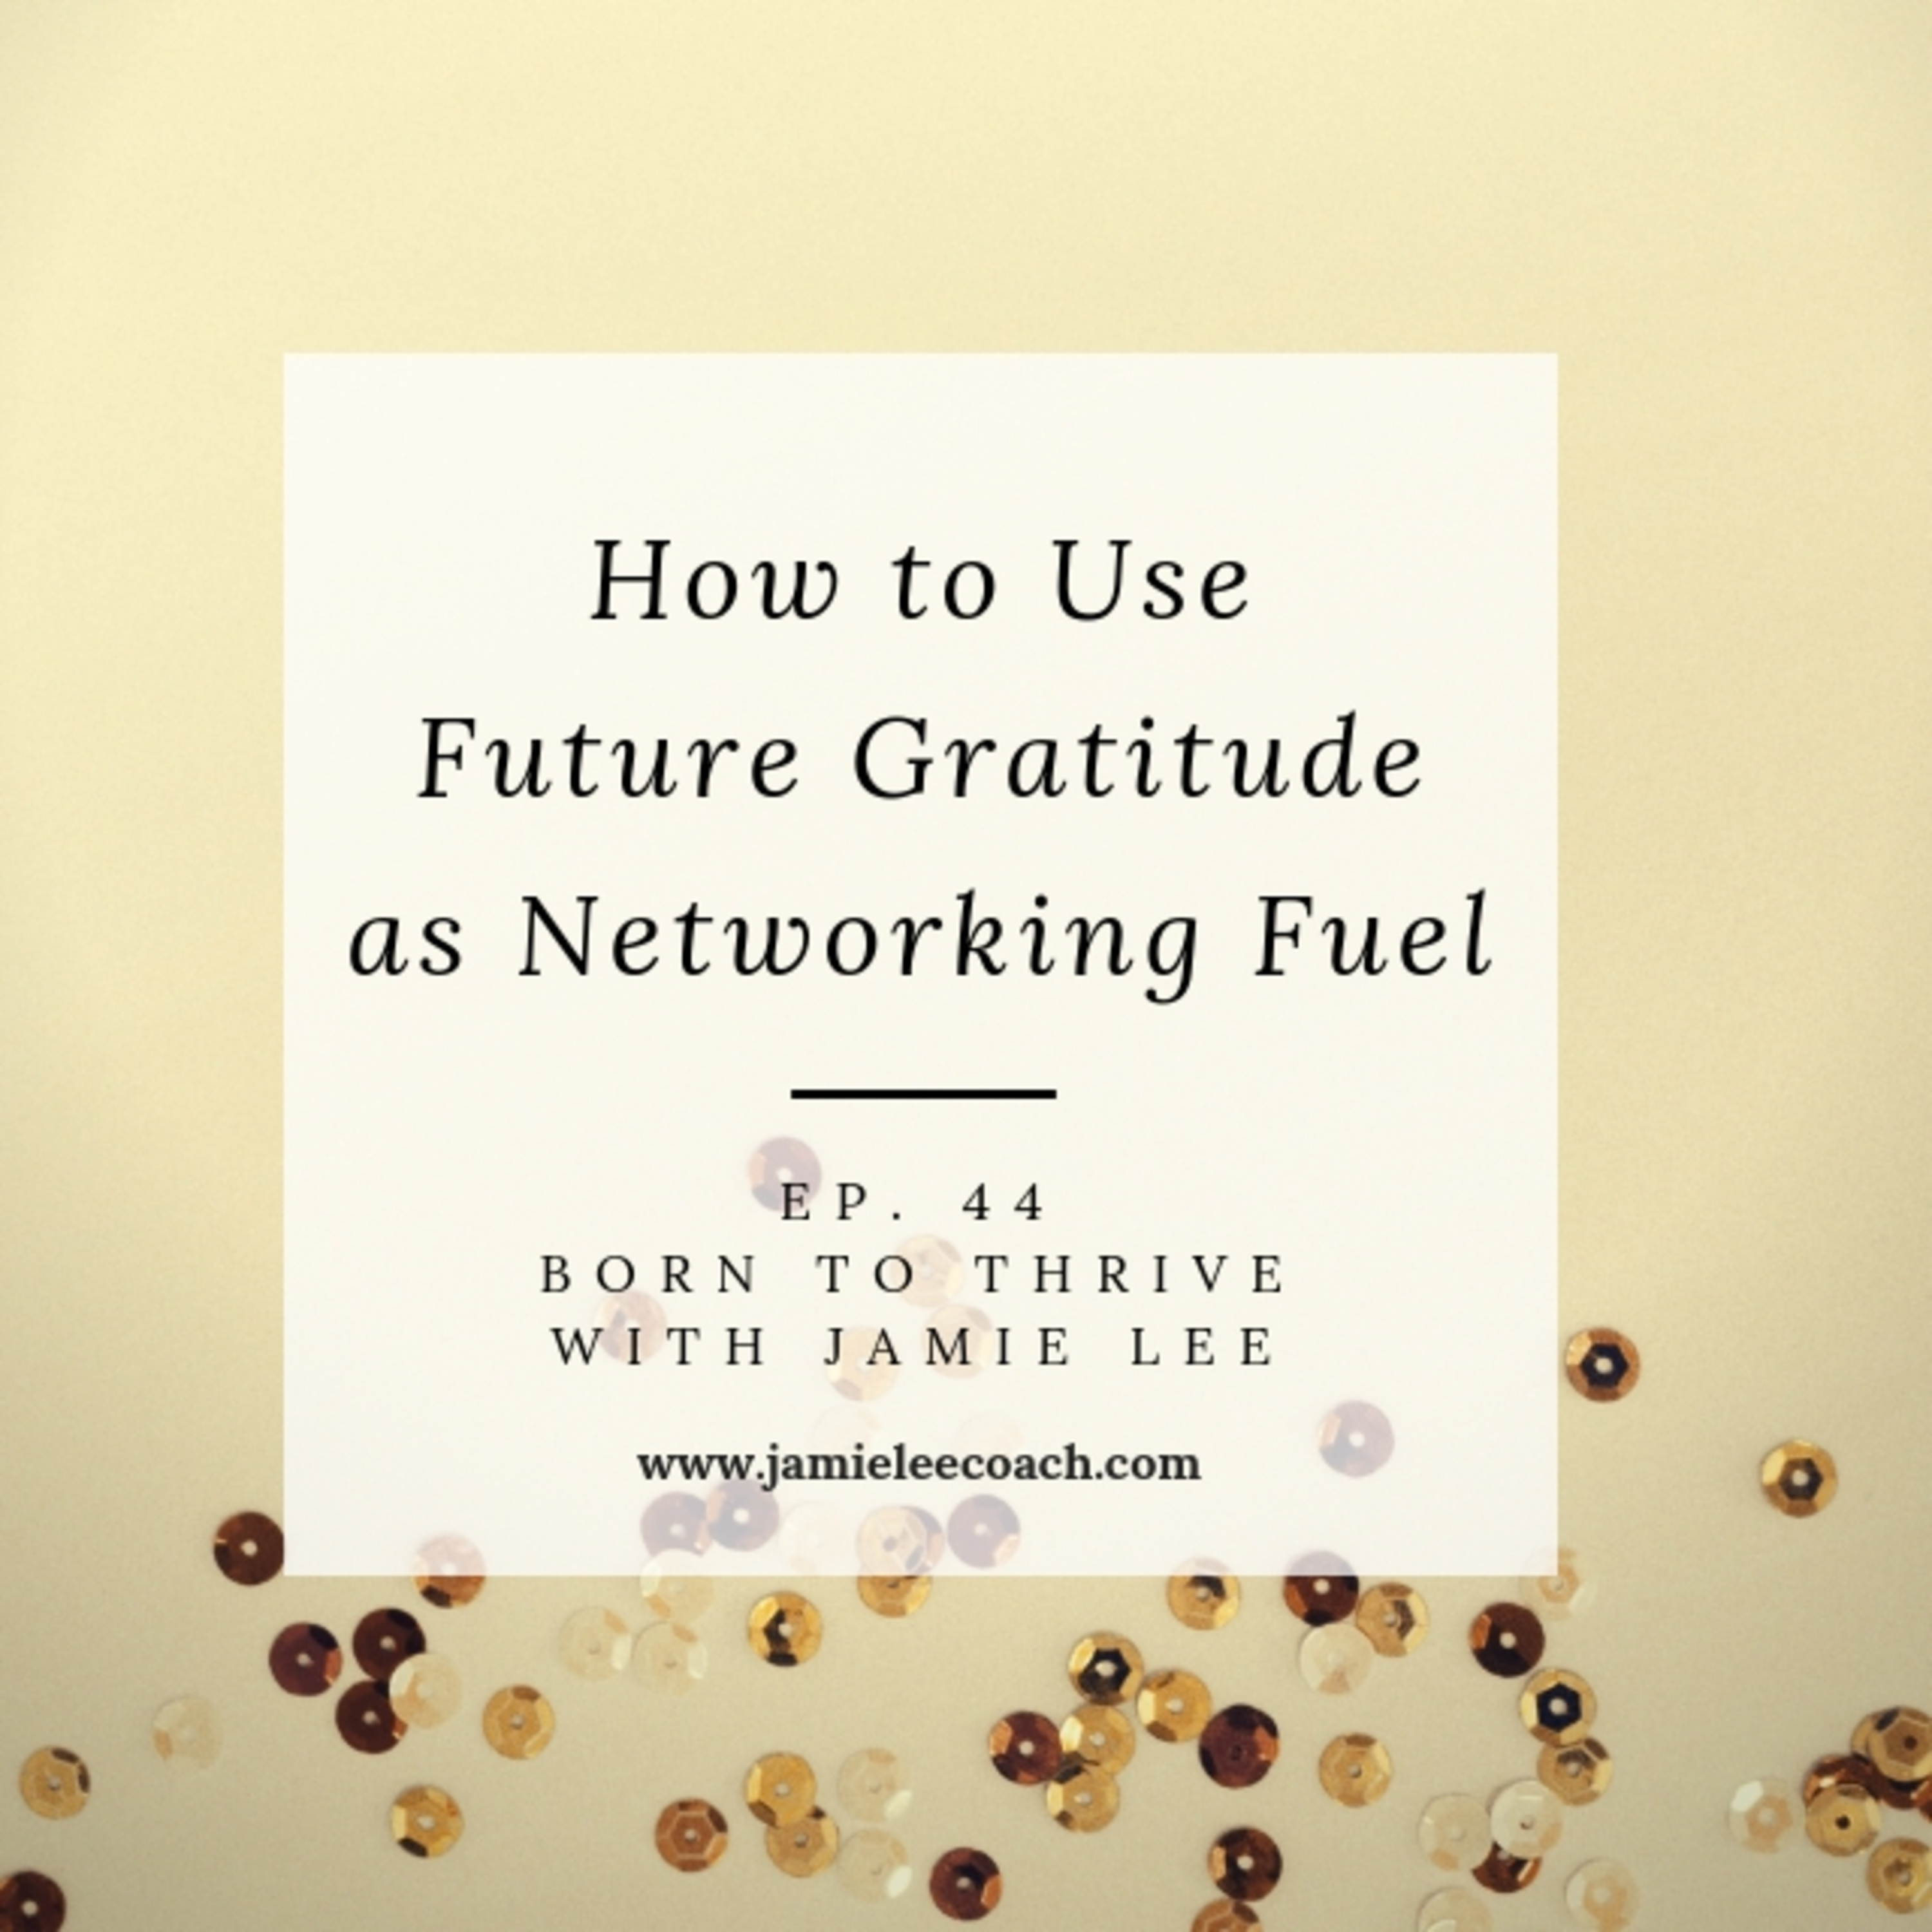 Ep.44 How to use Future Gratitude as Networking Fuel